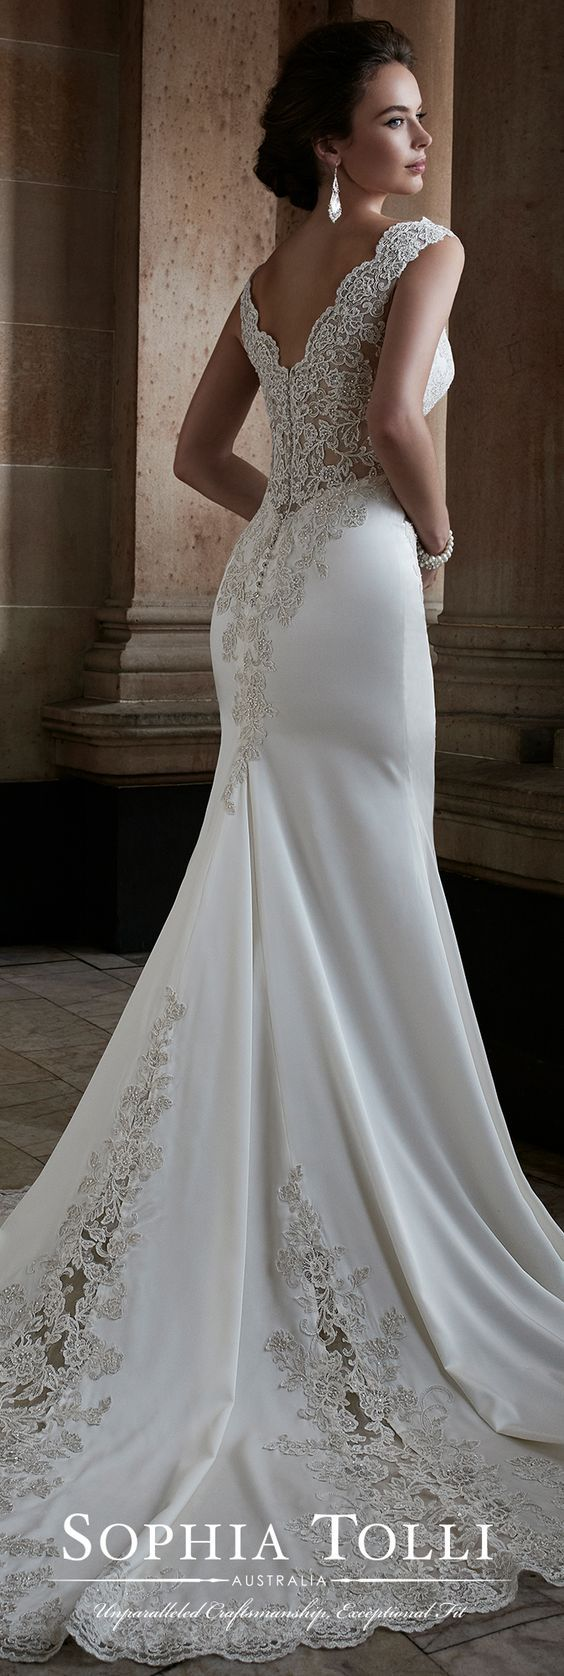 Wedding dress inspiration sophia tolli wedding dress dress